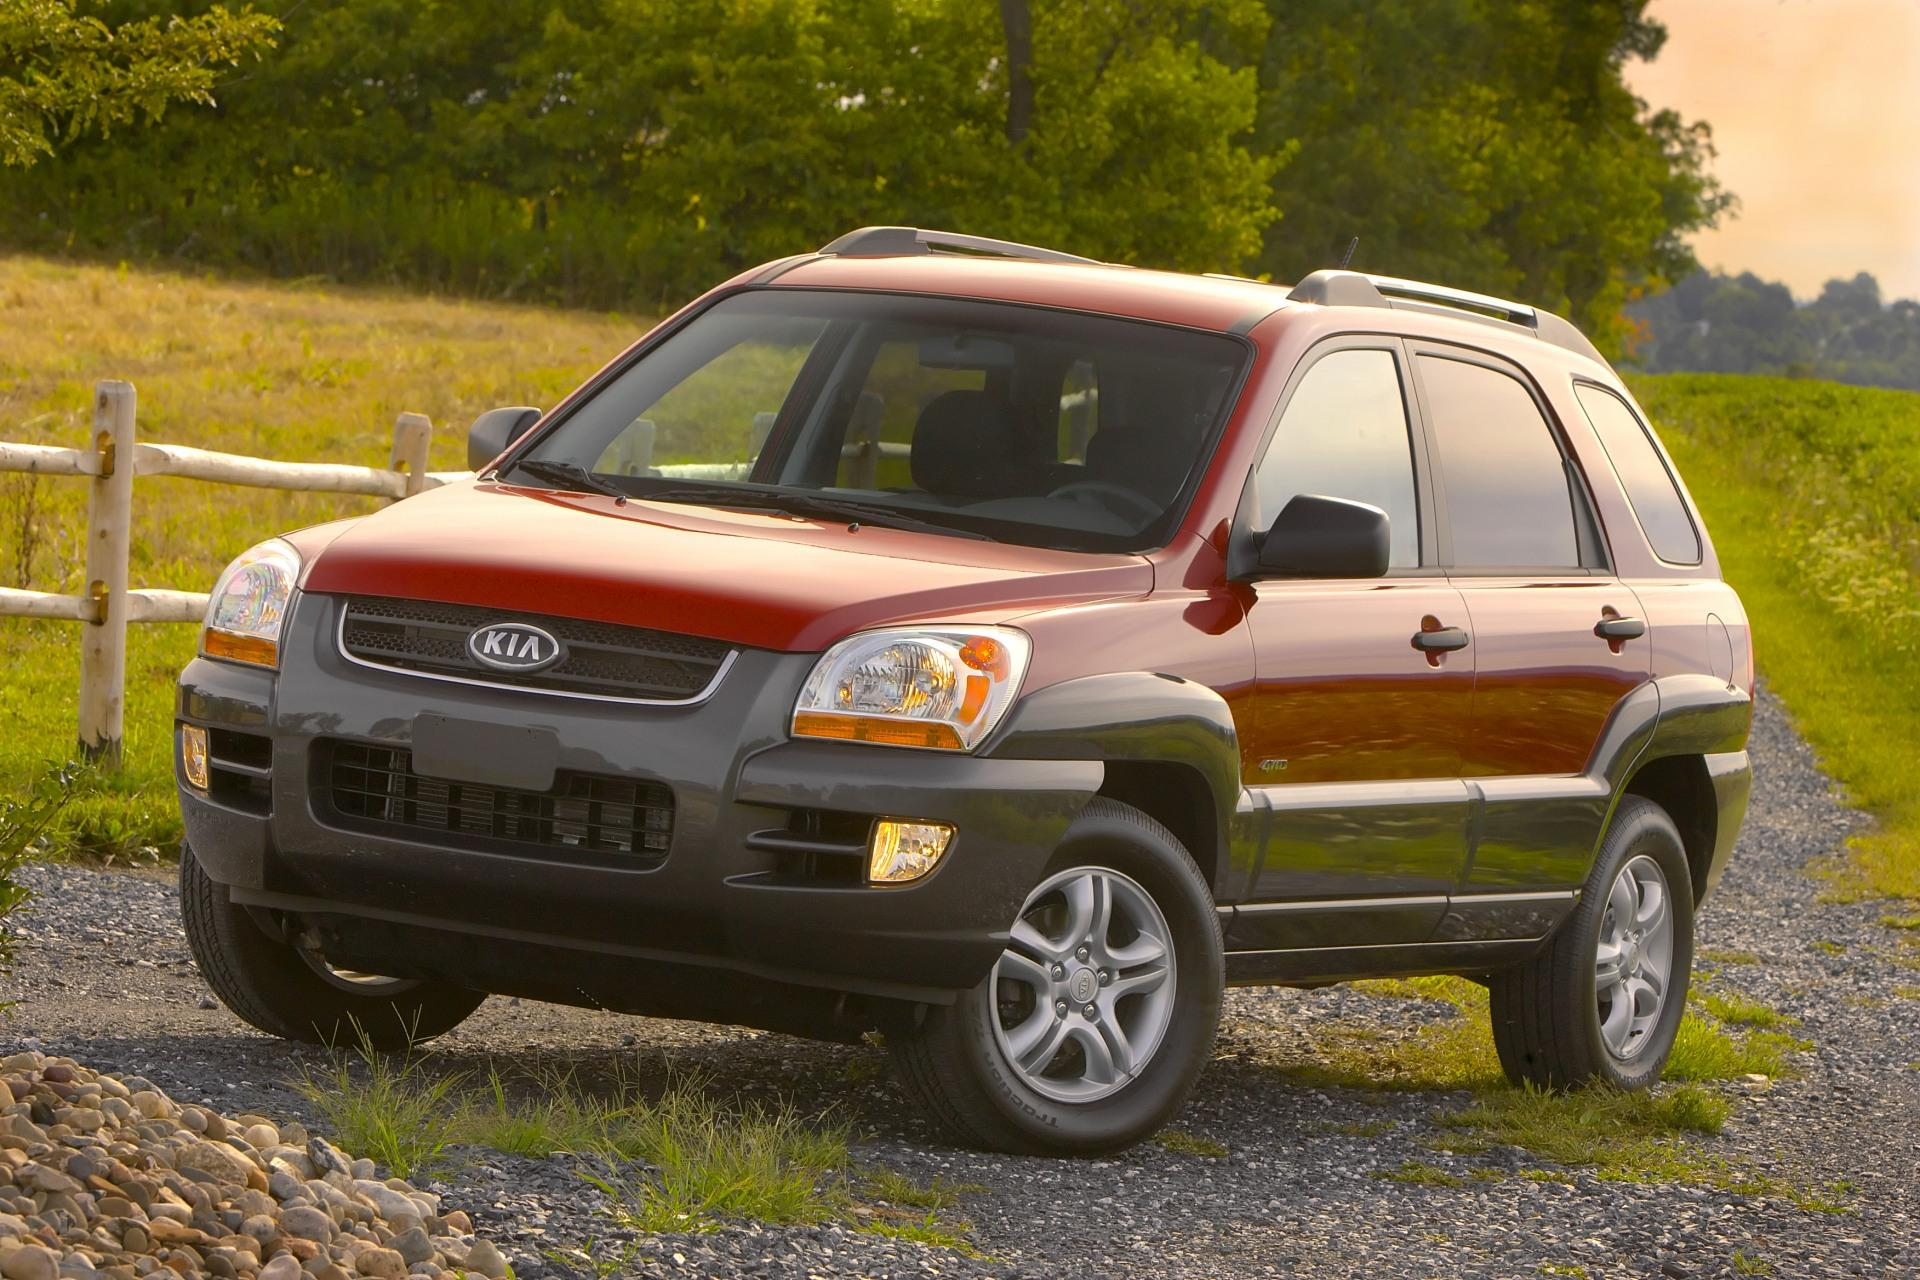 2009 kia sportage image photo 2 of 5 rh conceptcarz com 2006 kia sportage manual 2006 kia sportage manual